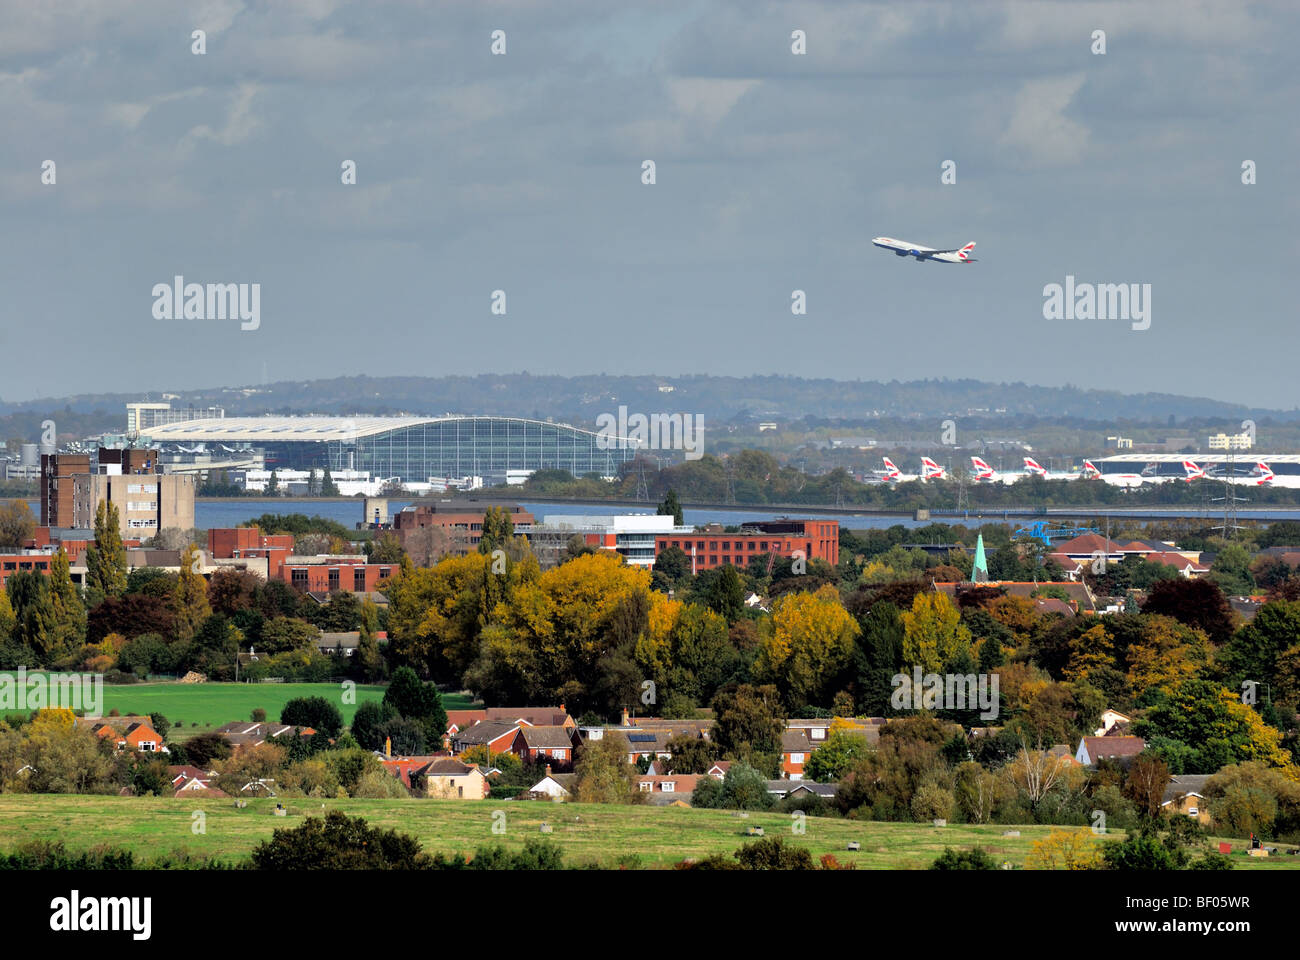 Terminal 5 Heathrow Airport England UK - Stock Image